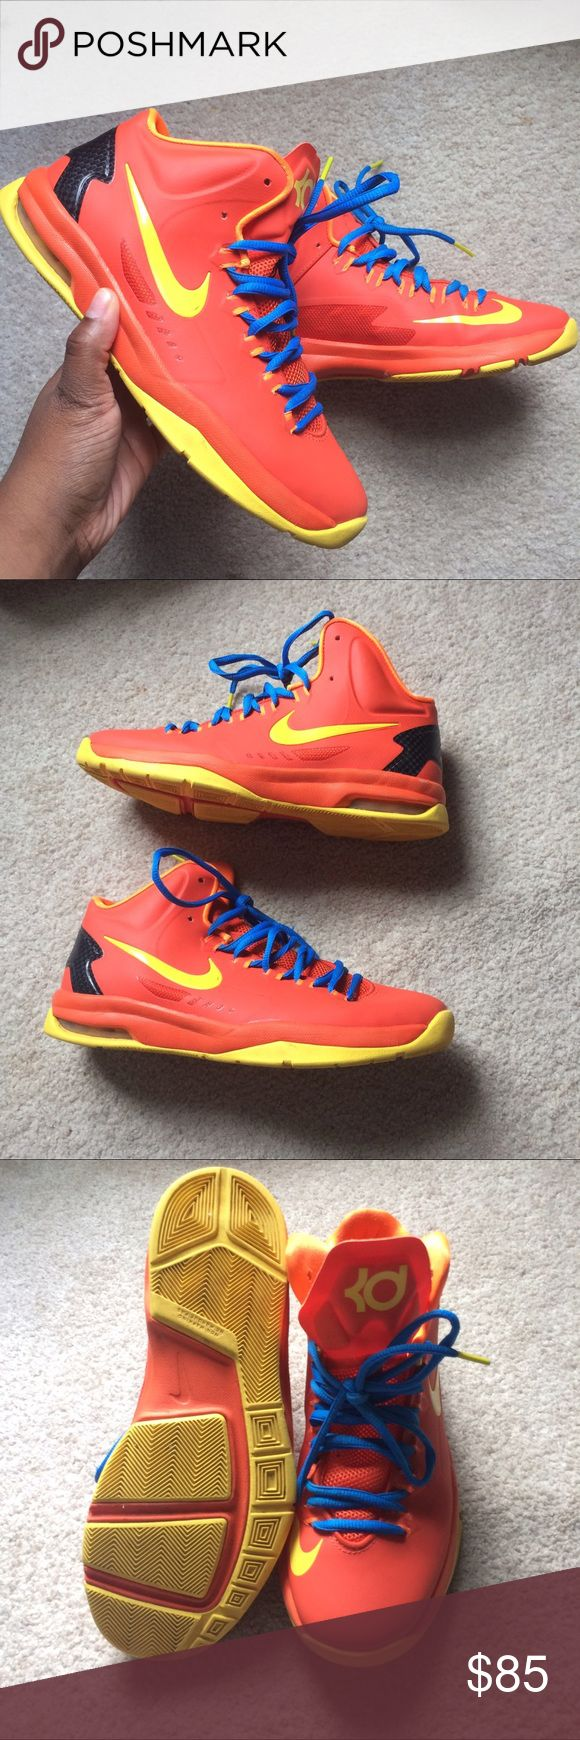 "NIKE KD V ELITE ""TEAM ORANGE"" Orange Nike KDs with yellow accents and blue laces! Released June 2013. SIZE 7 IN WOMEN. SIZE 5.5 IN BOYS Nike Shoes Sneakers"